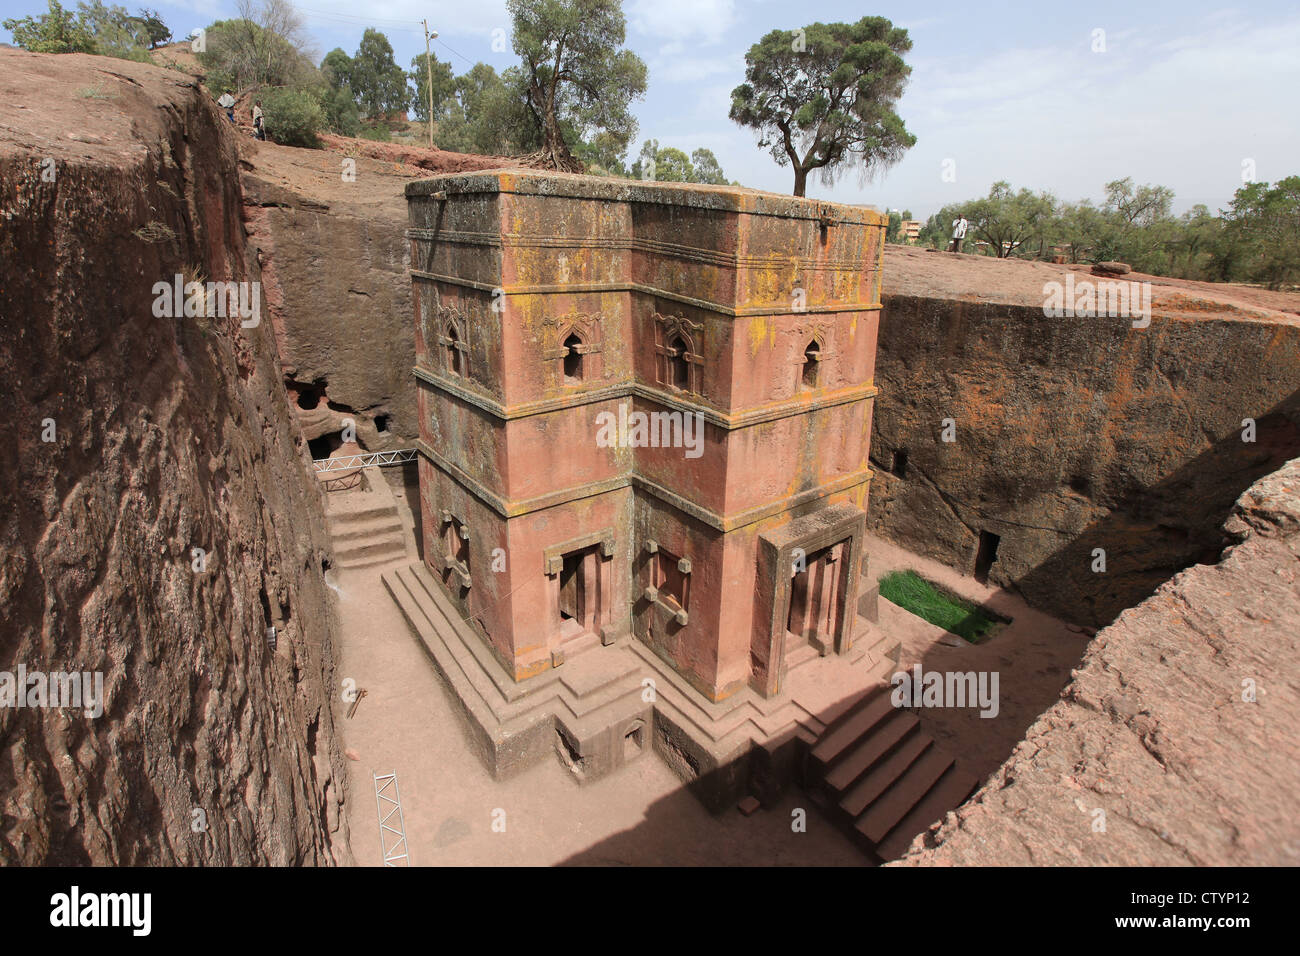 One of the famous churches of Lalibela, Ethiopia, hewn from the rocks. This one is bete Giyorgis, or Saint George - Stock Image